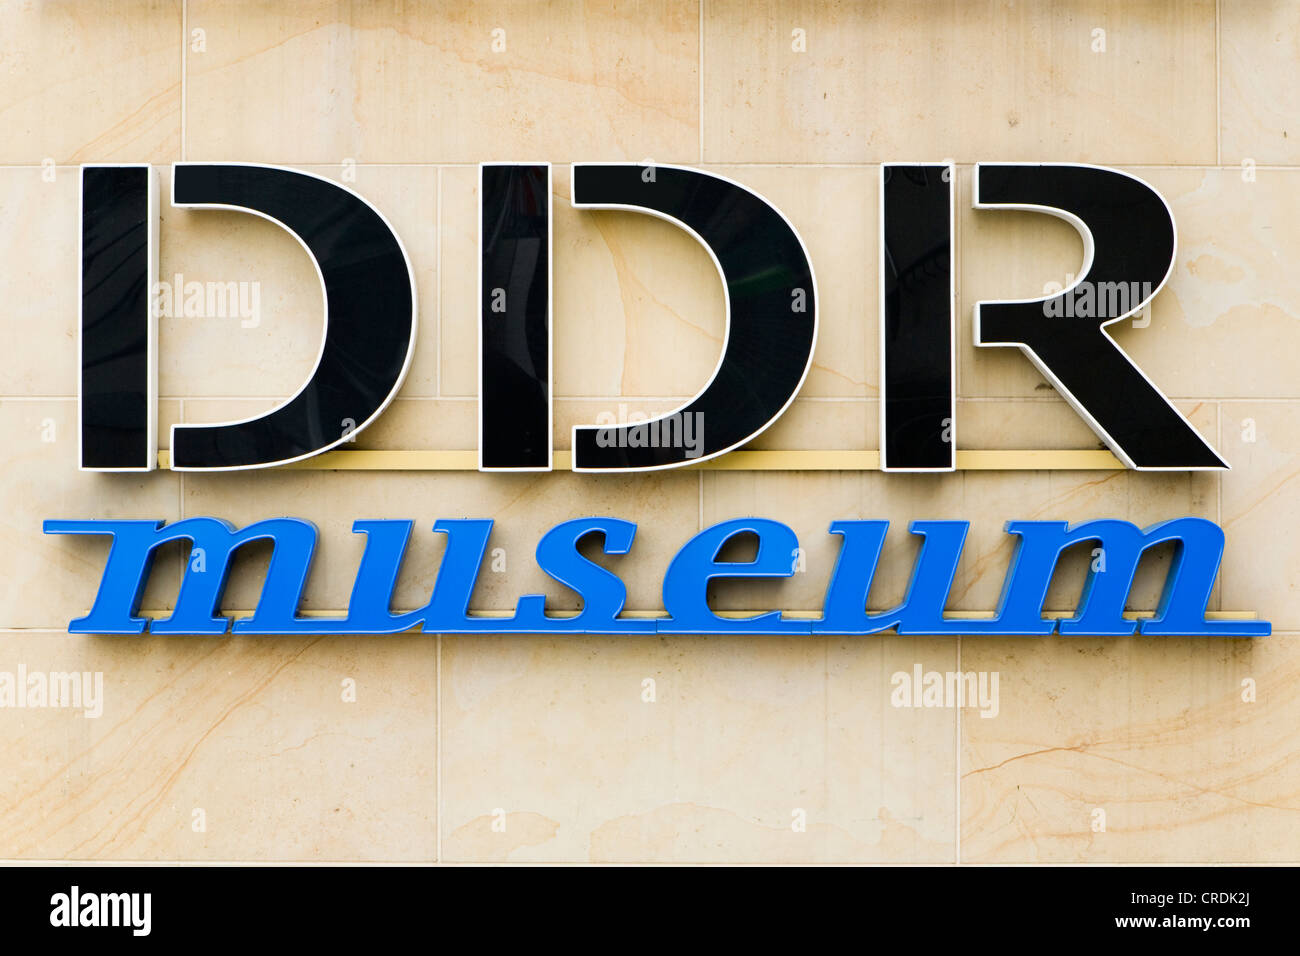 Logo of the DDR Museum, Berlin, Germany, Europe - Stock Image